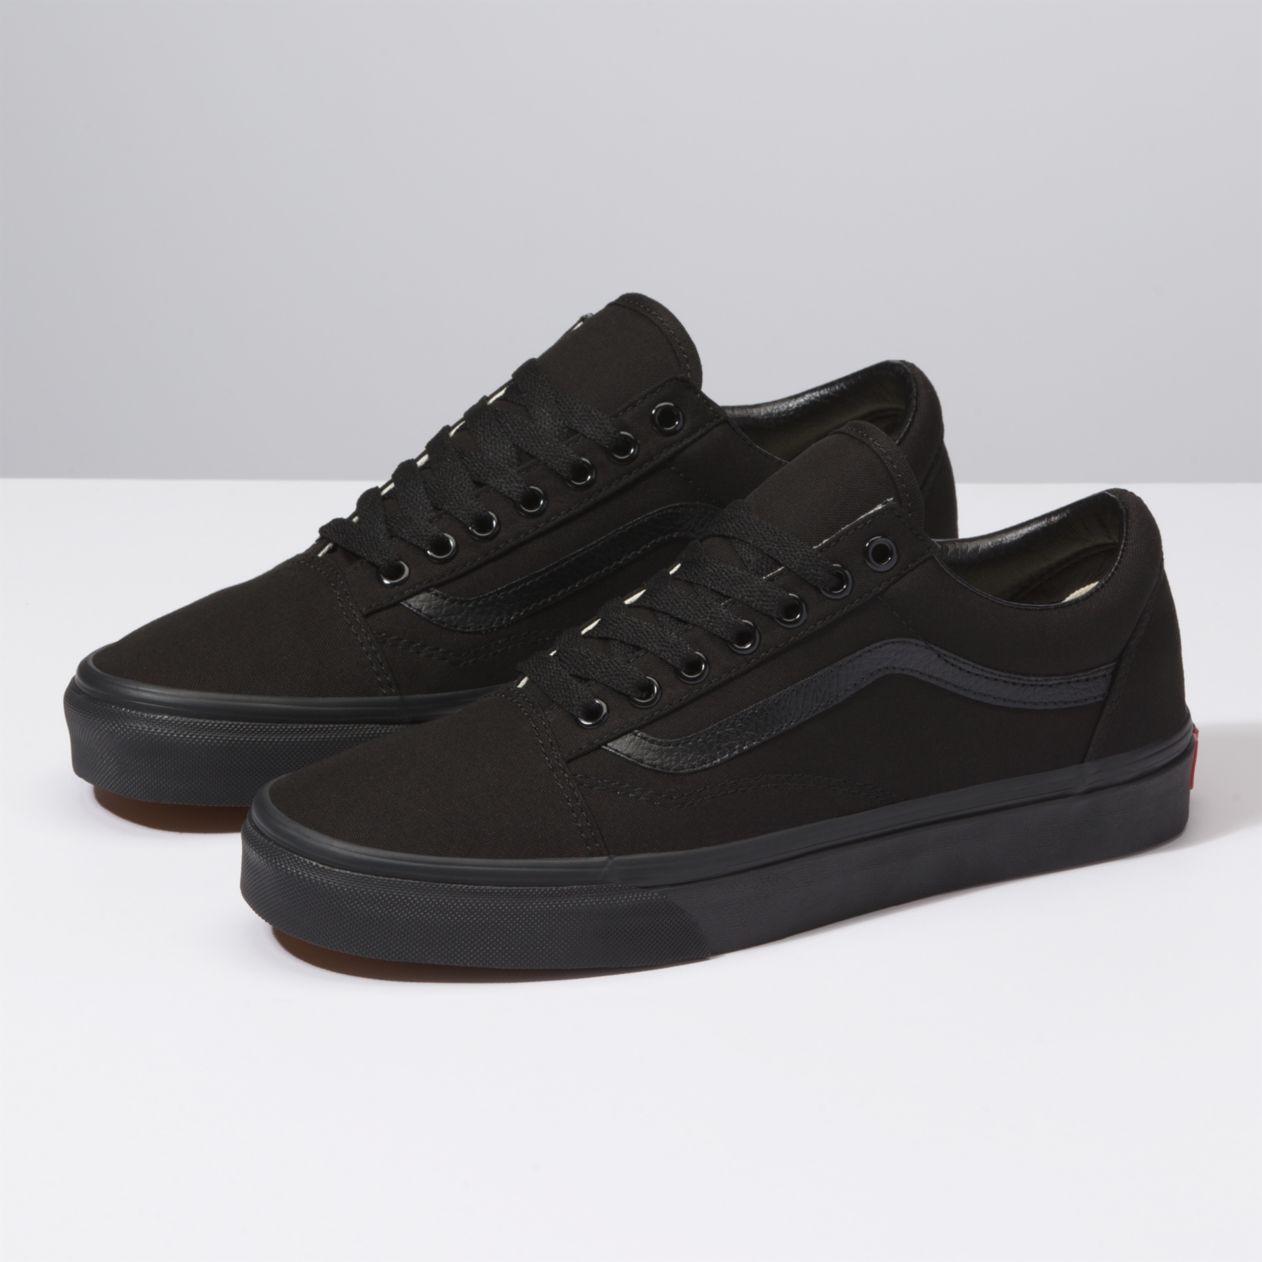 New Men and Women Vans Old Skool All Black Skateboarding Sho